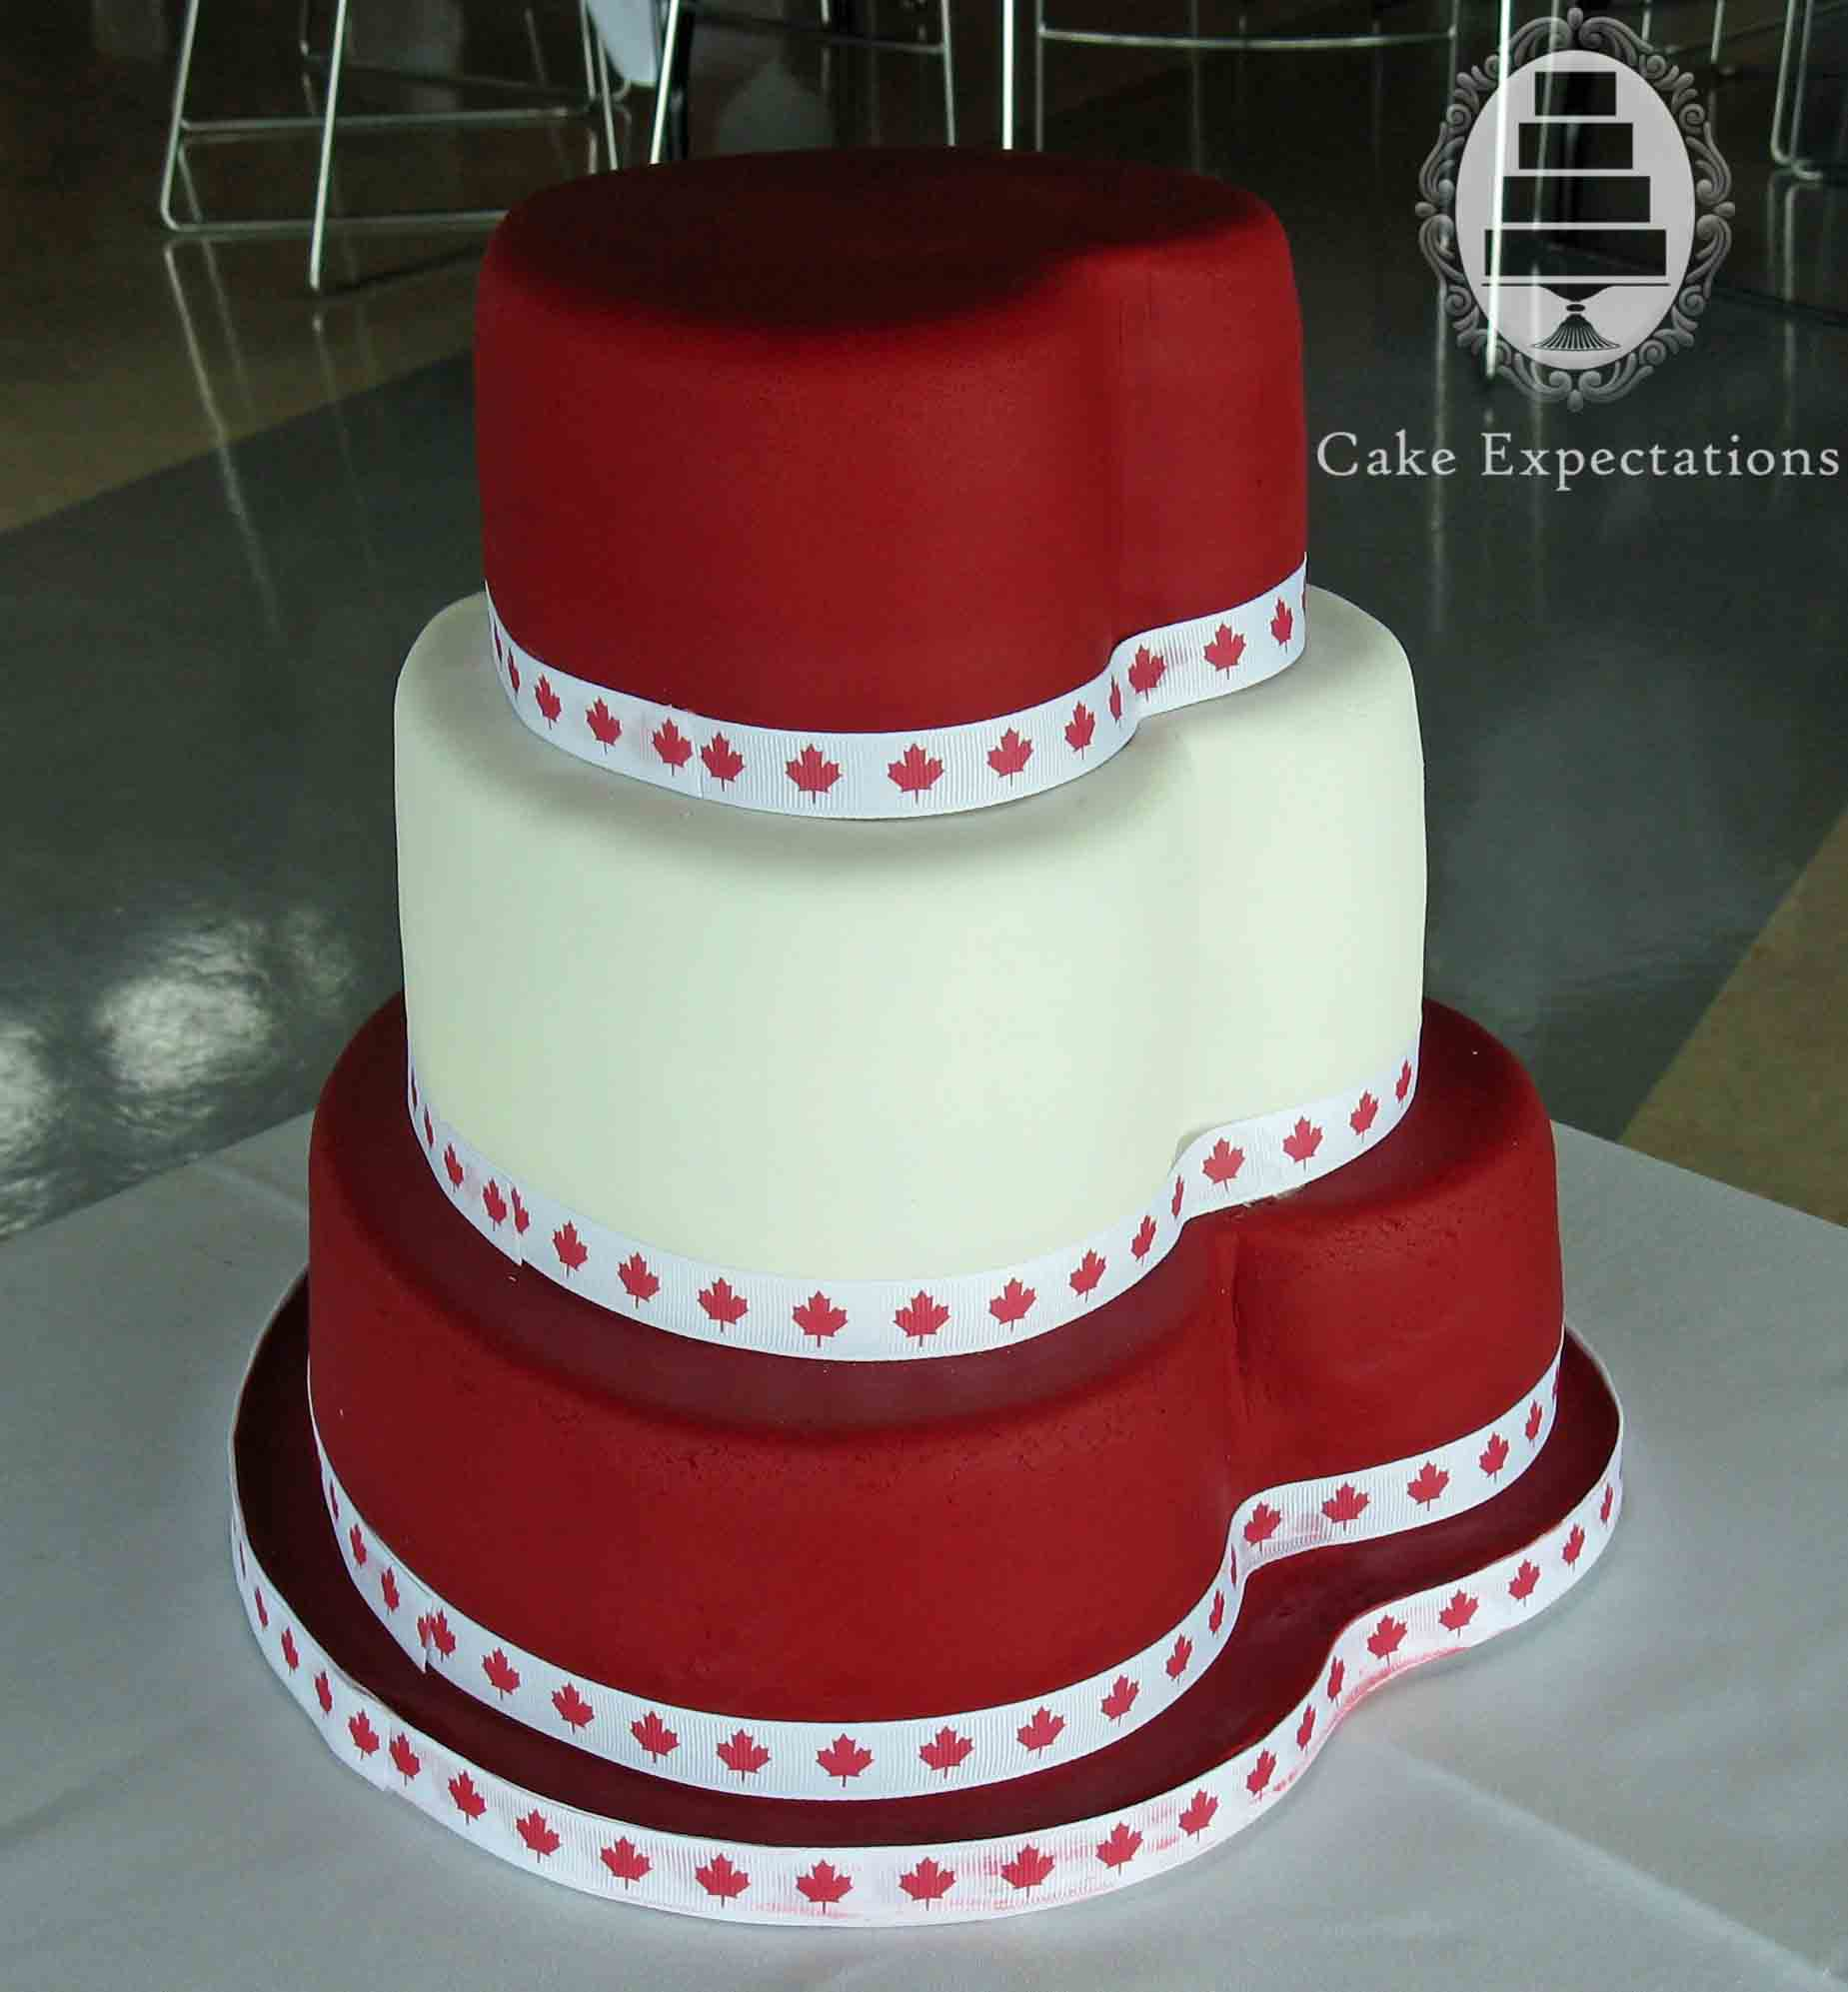 Www.cakeexpectations.ca » Cakes